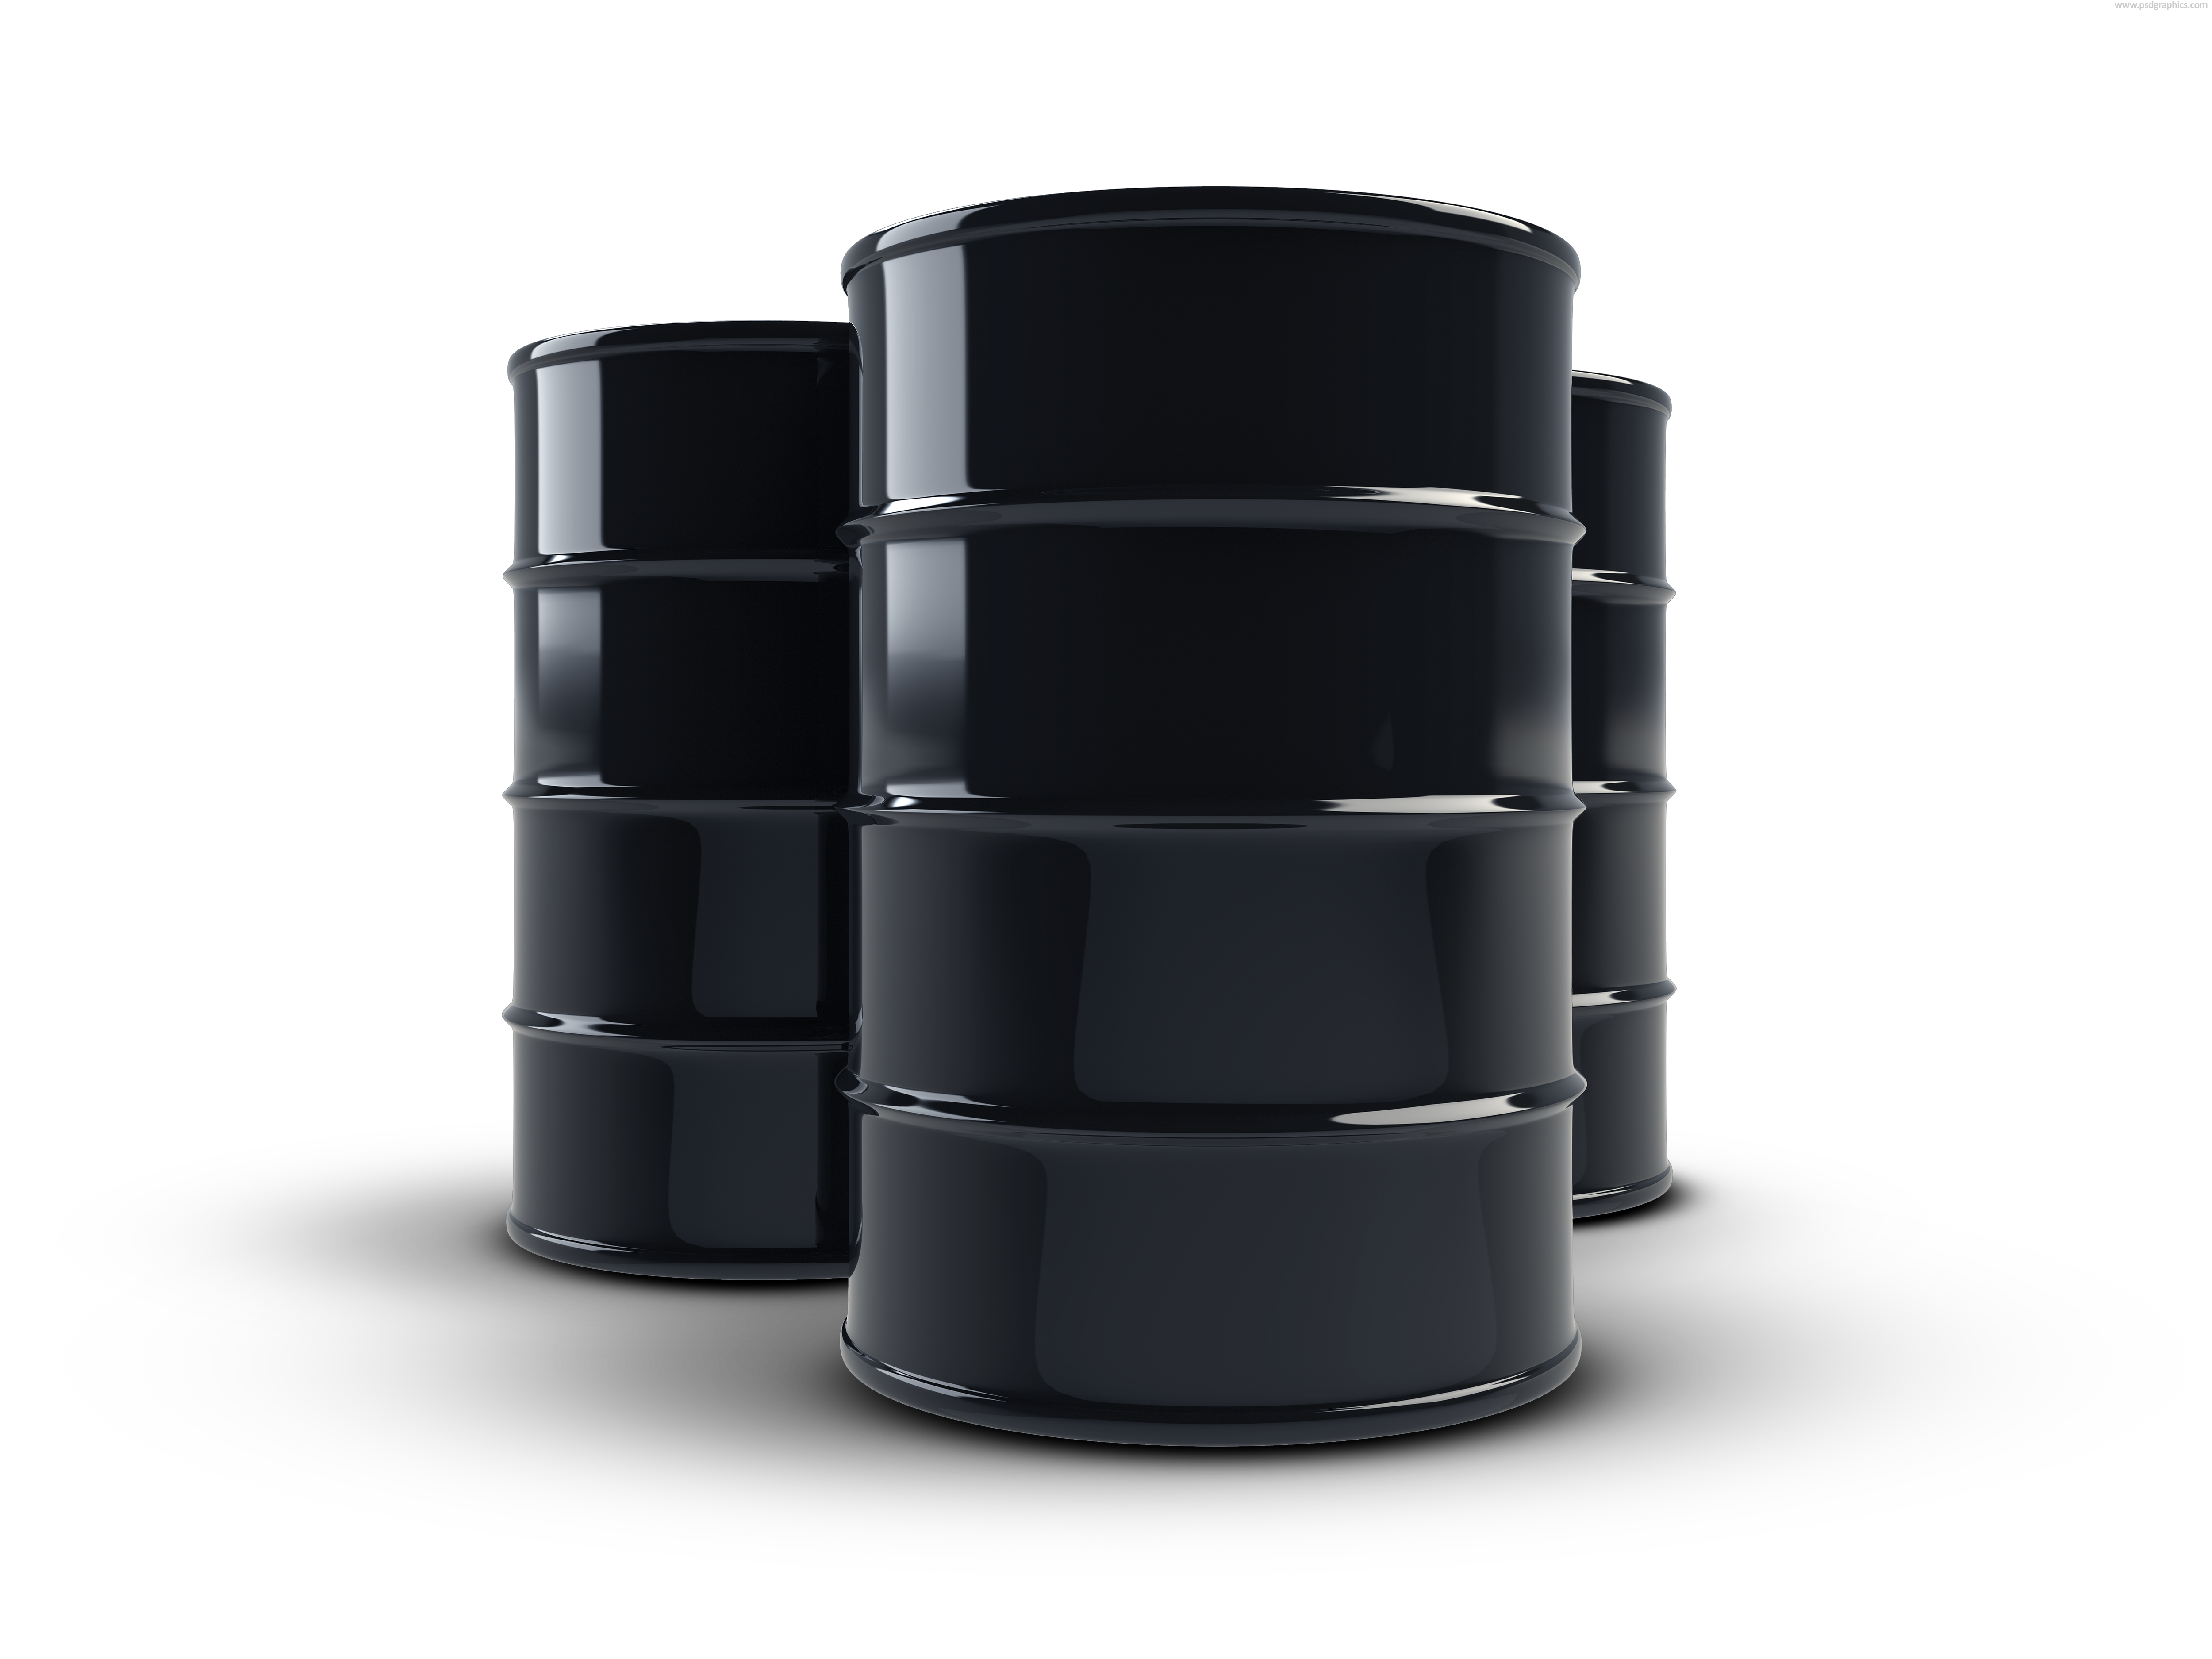 Oil Barrel Graphic Png image #20859